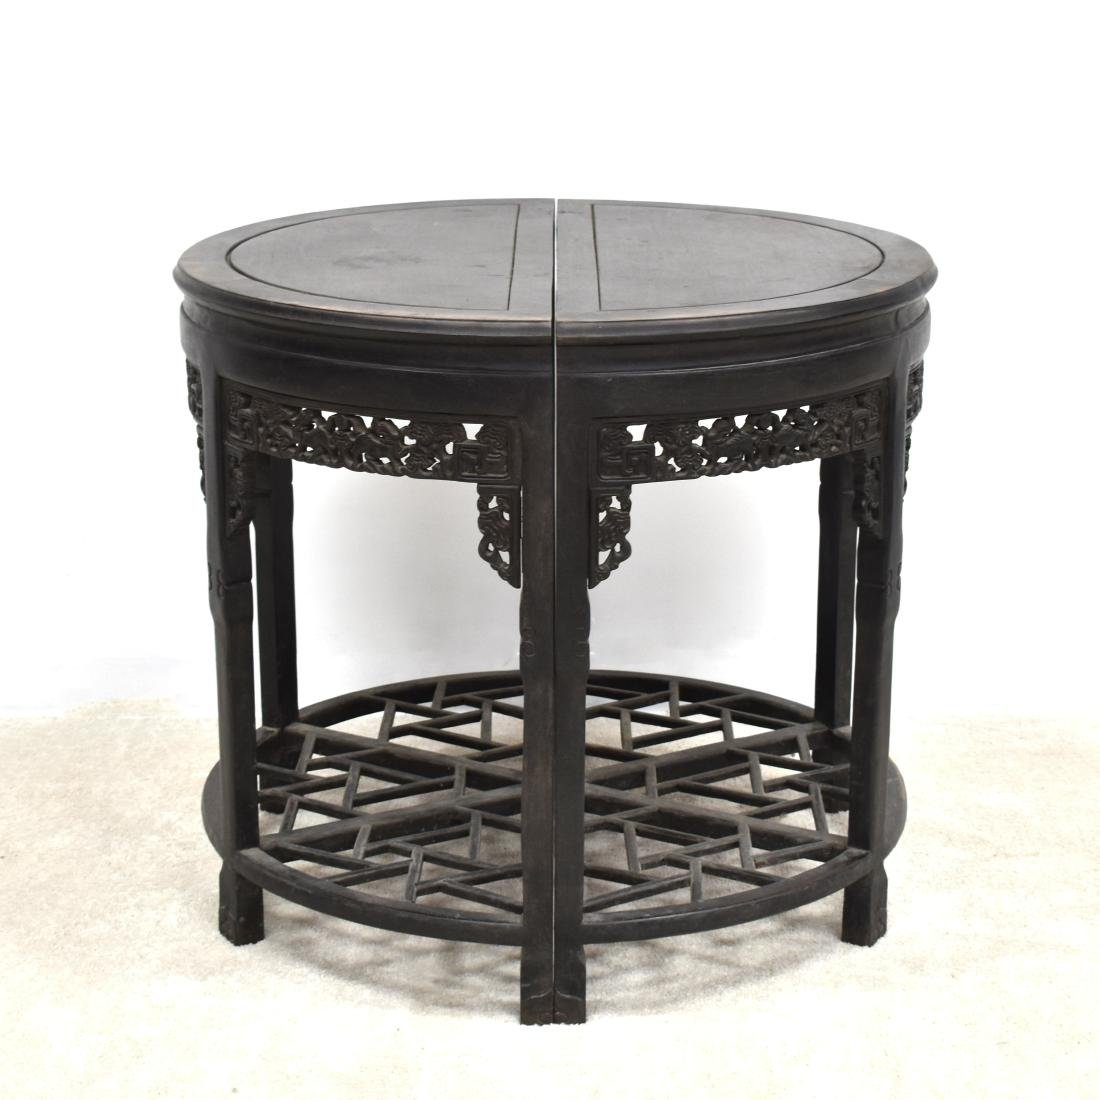 19TH C PAIR OF CHINESE ZITAN MOON TABLE - 16